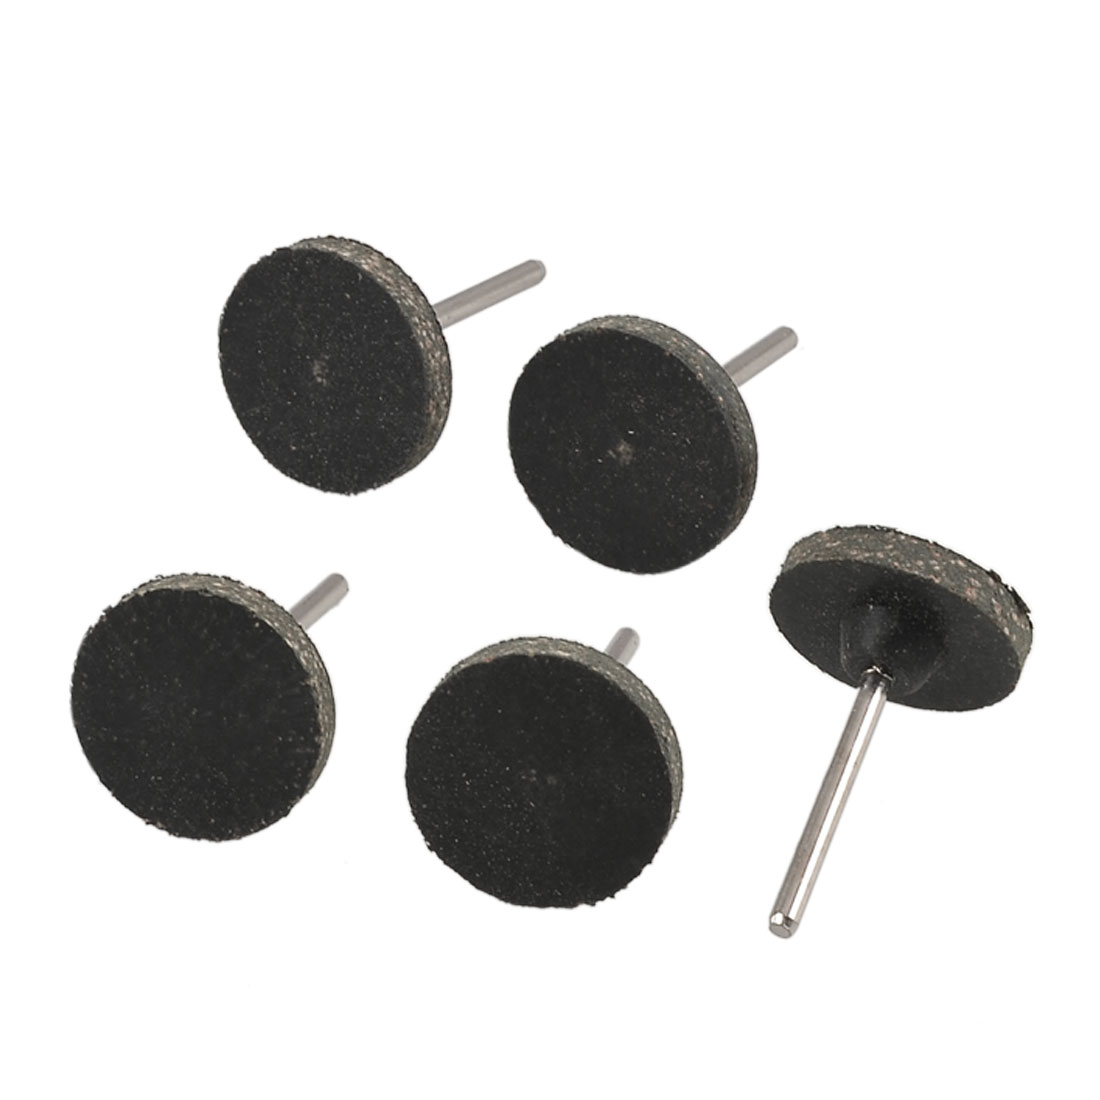 5 Pcs 25mmx4mm Rubber Cylindrical Grinding Heads Mounted Tool